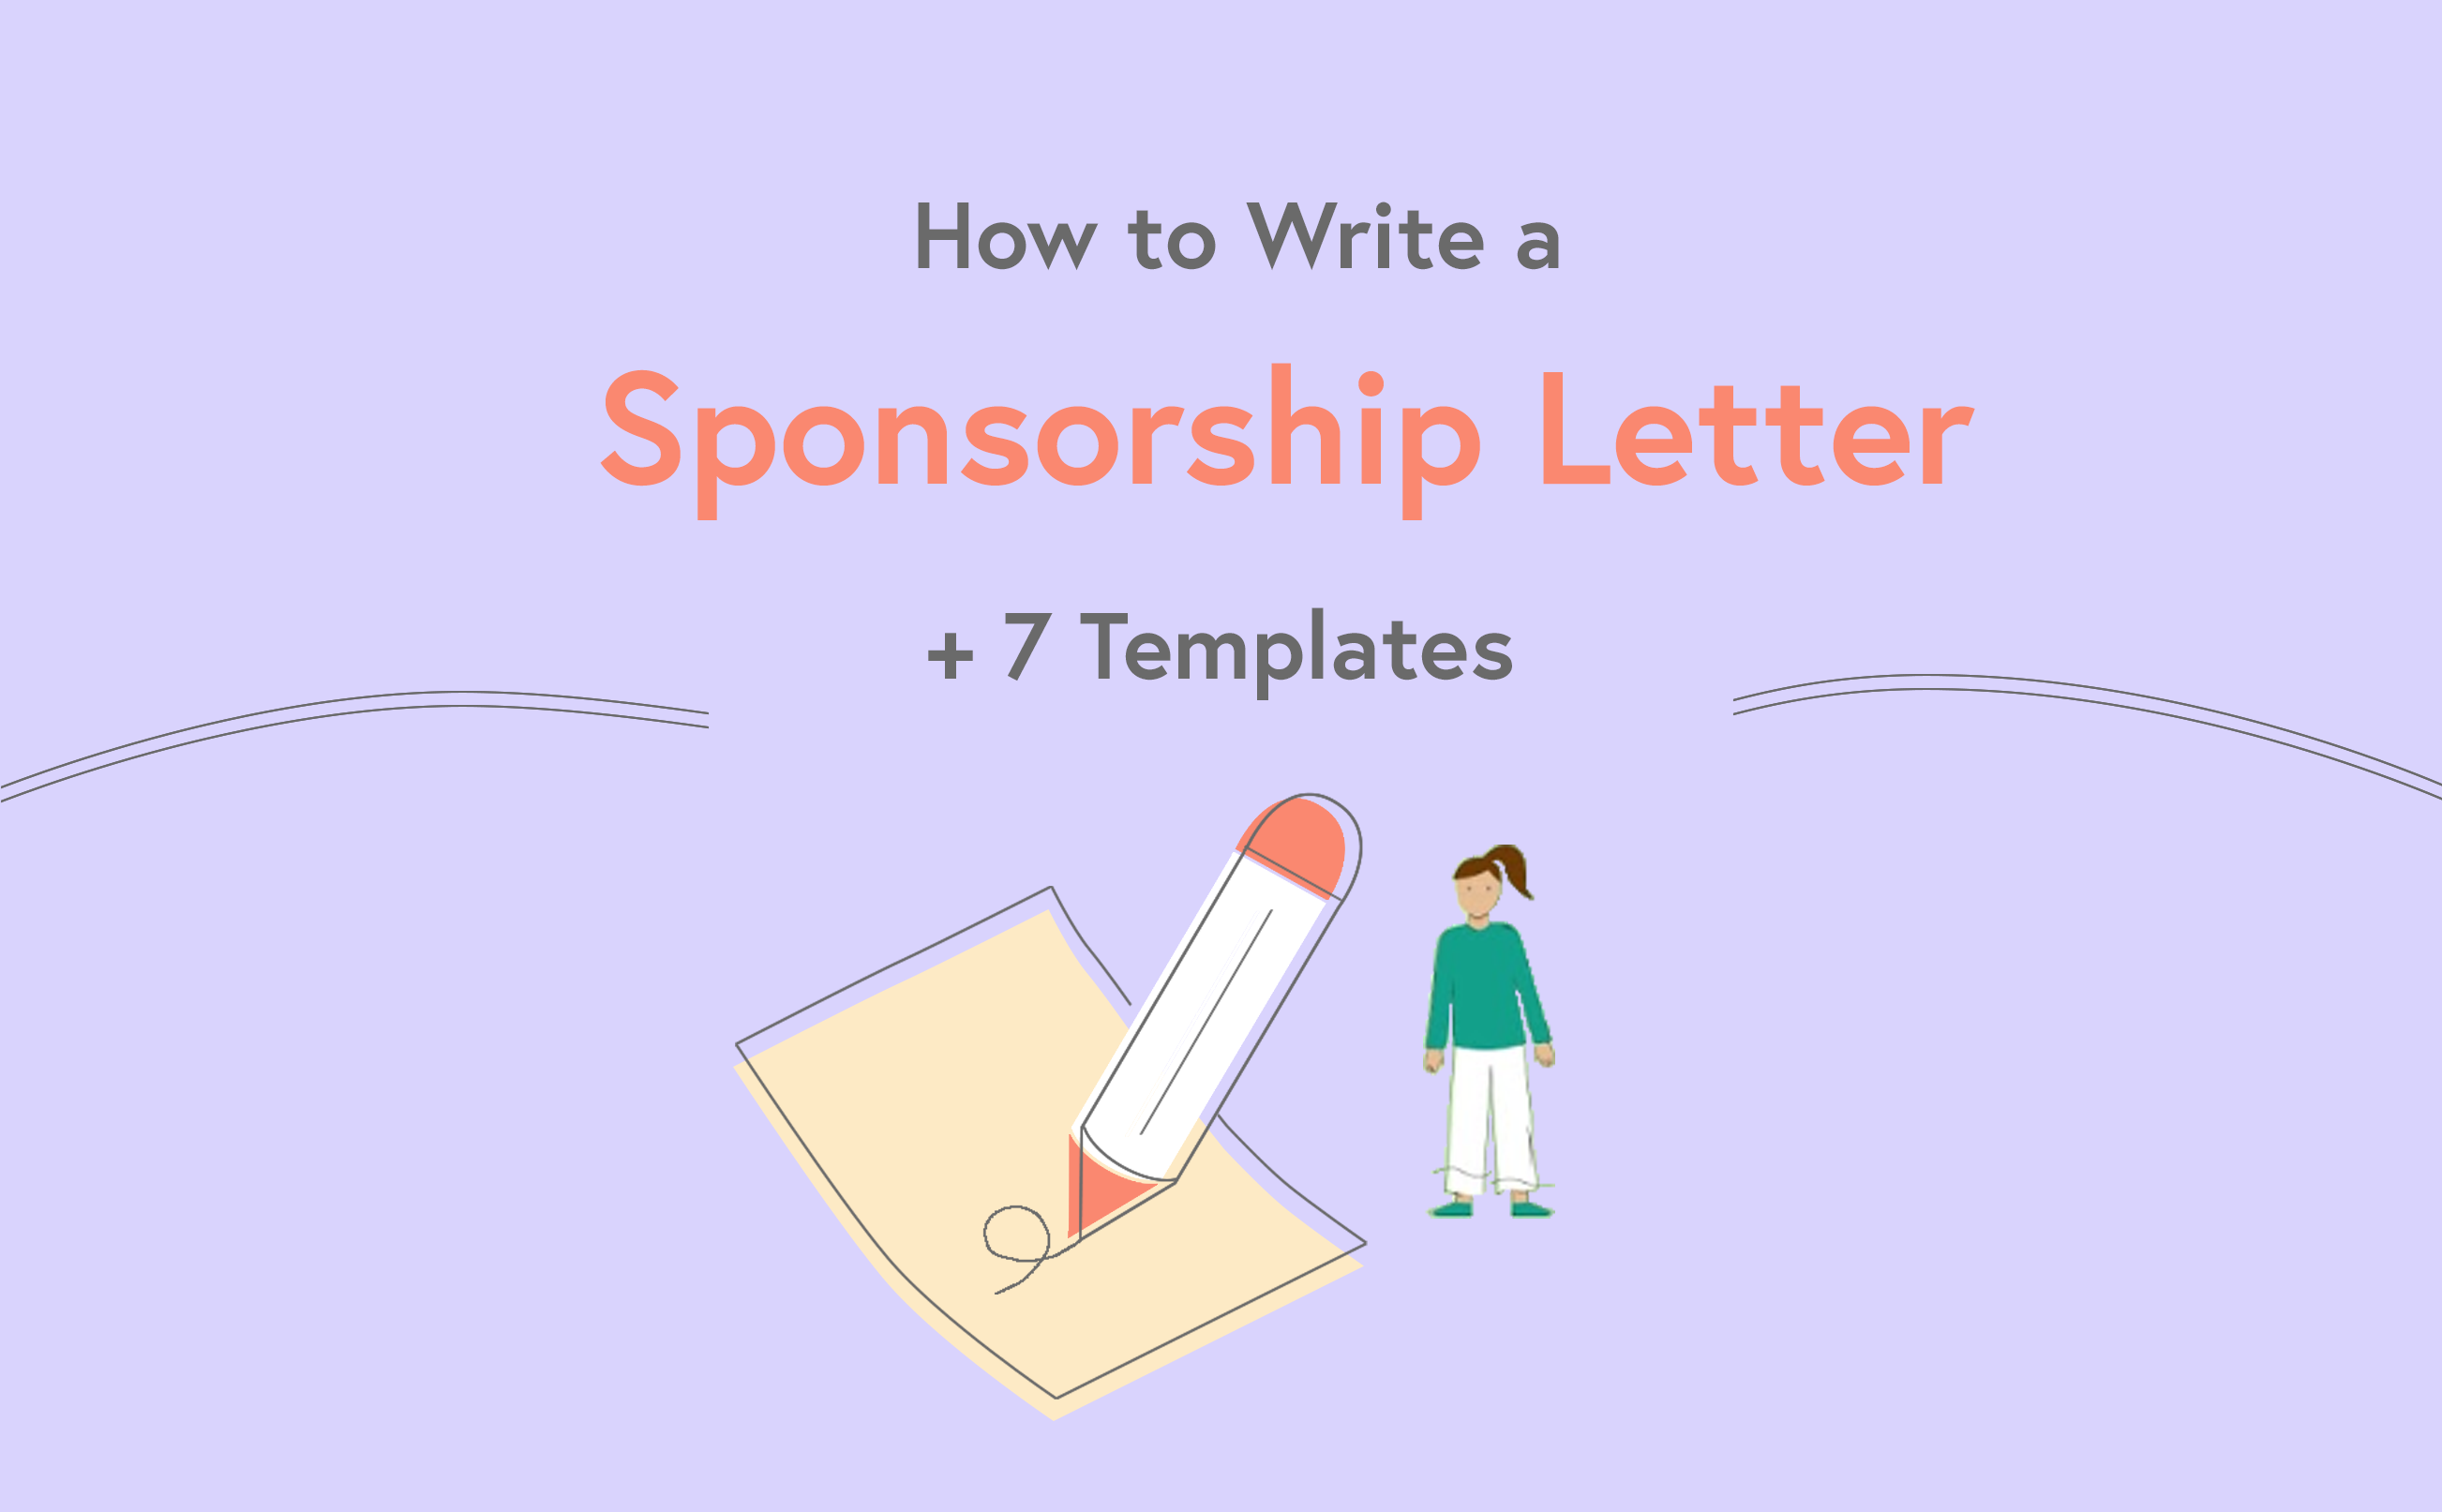 How to Write a Sponsorship Letter